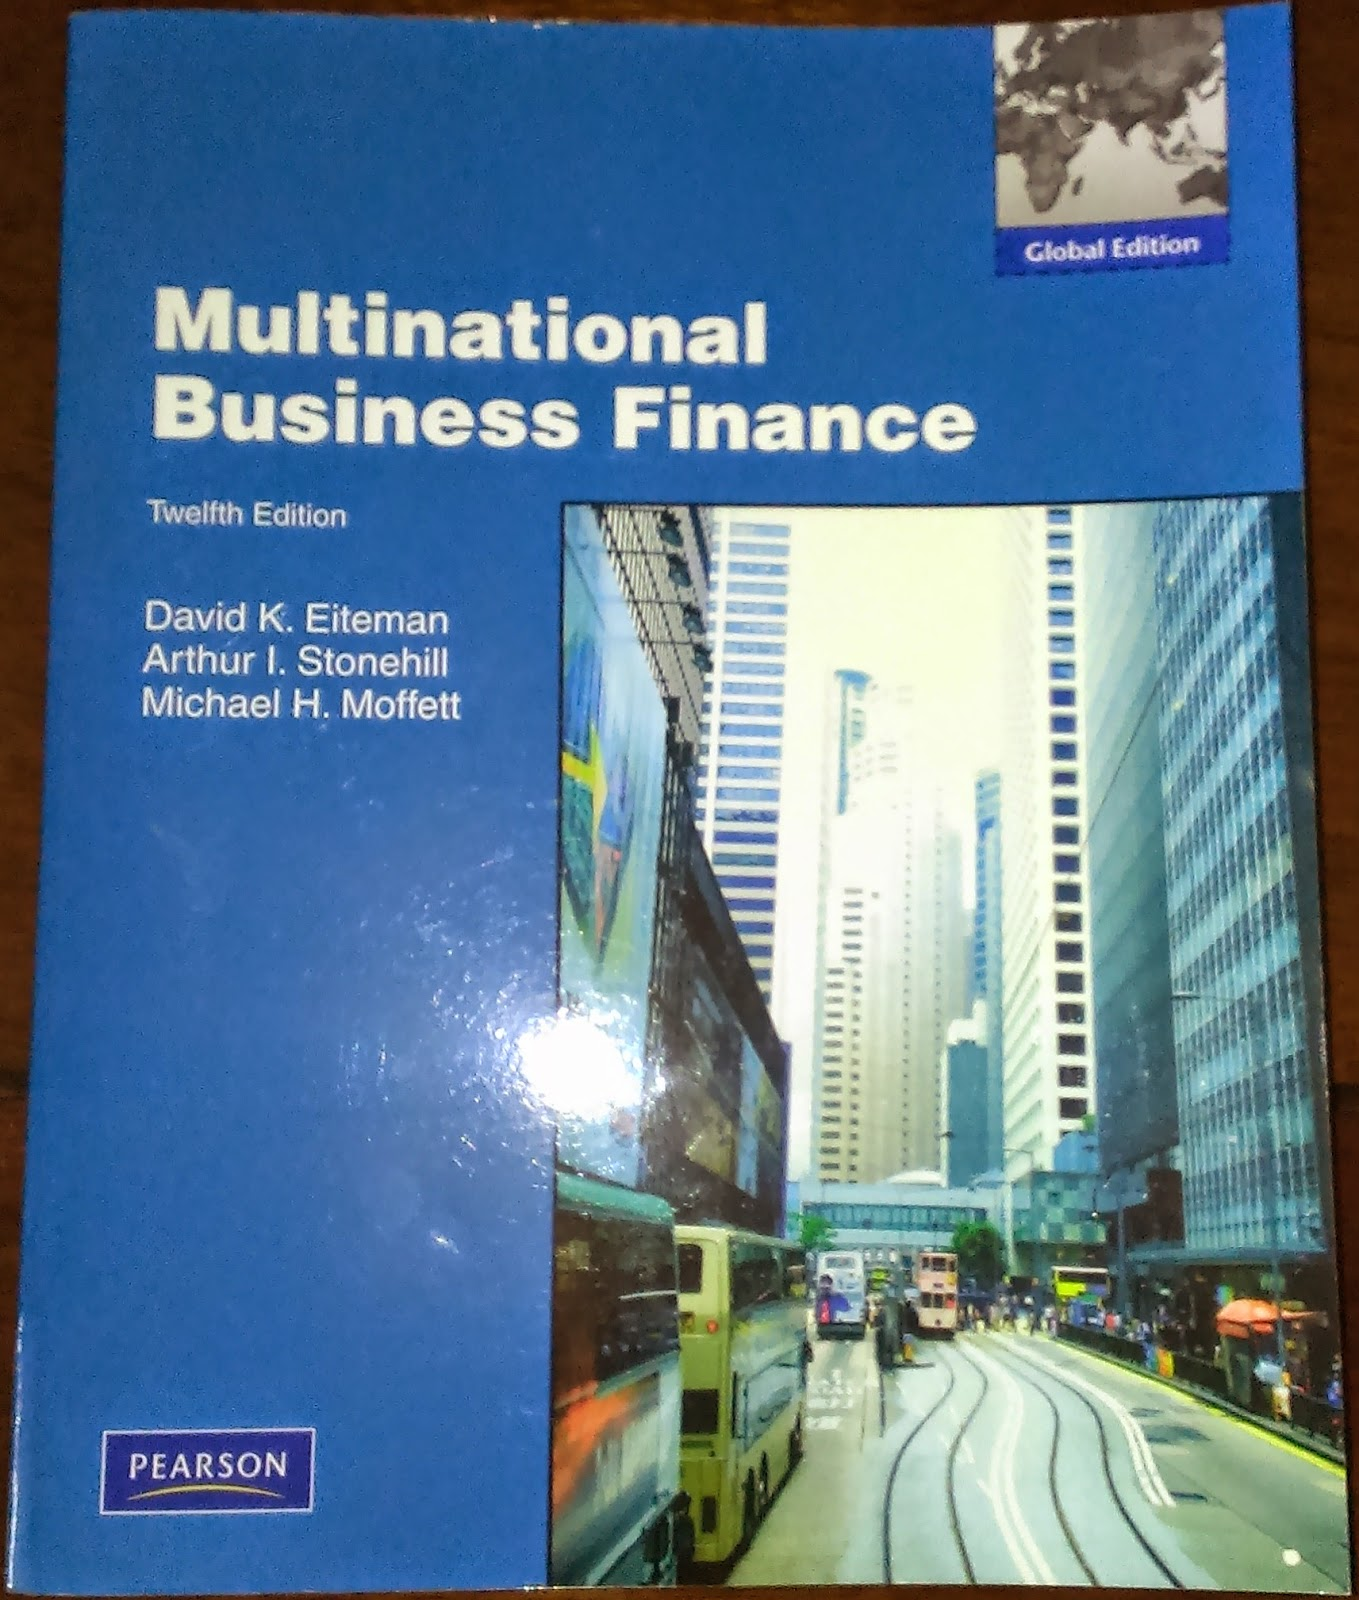 Peter dicken global shift 6th edition